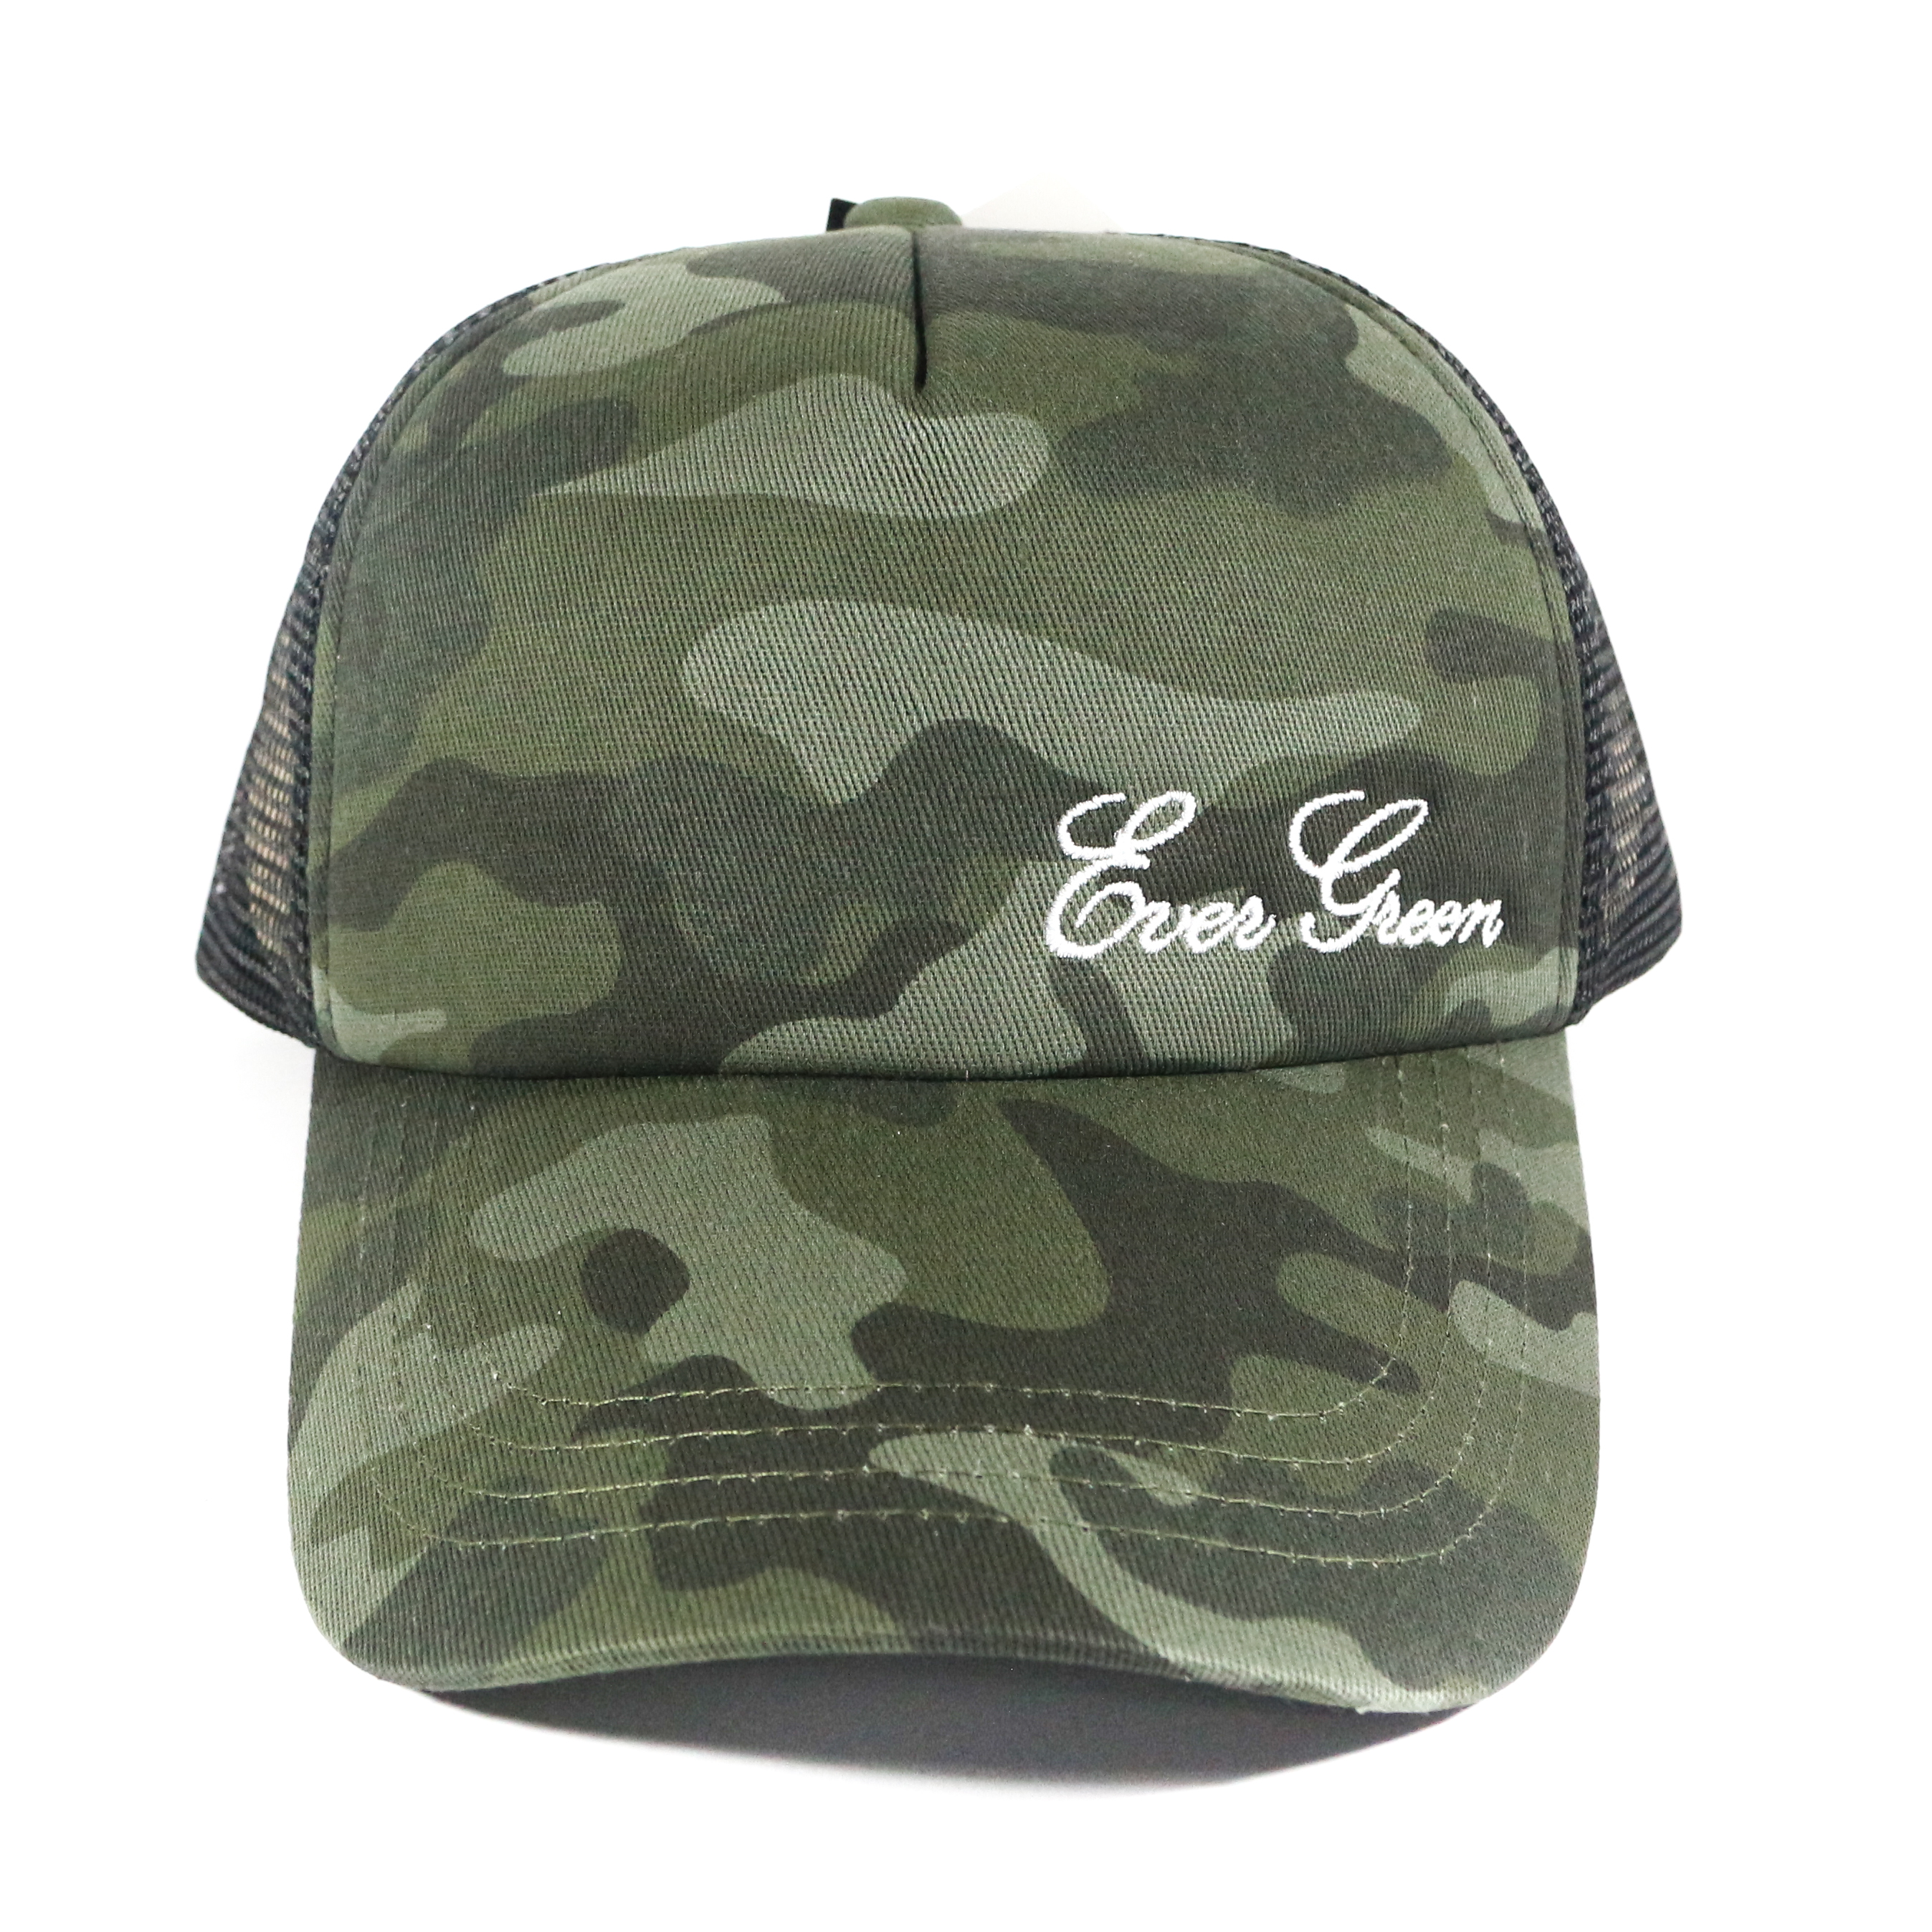 Evergreen Cap Mesh Cap Original Japan Free Size Black Camou (9910)